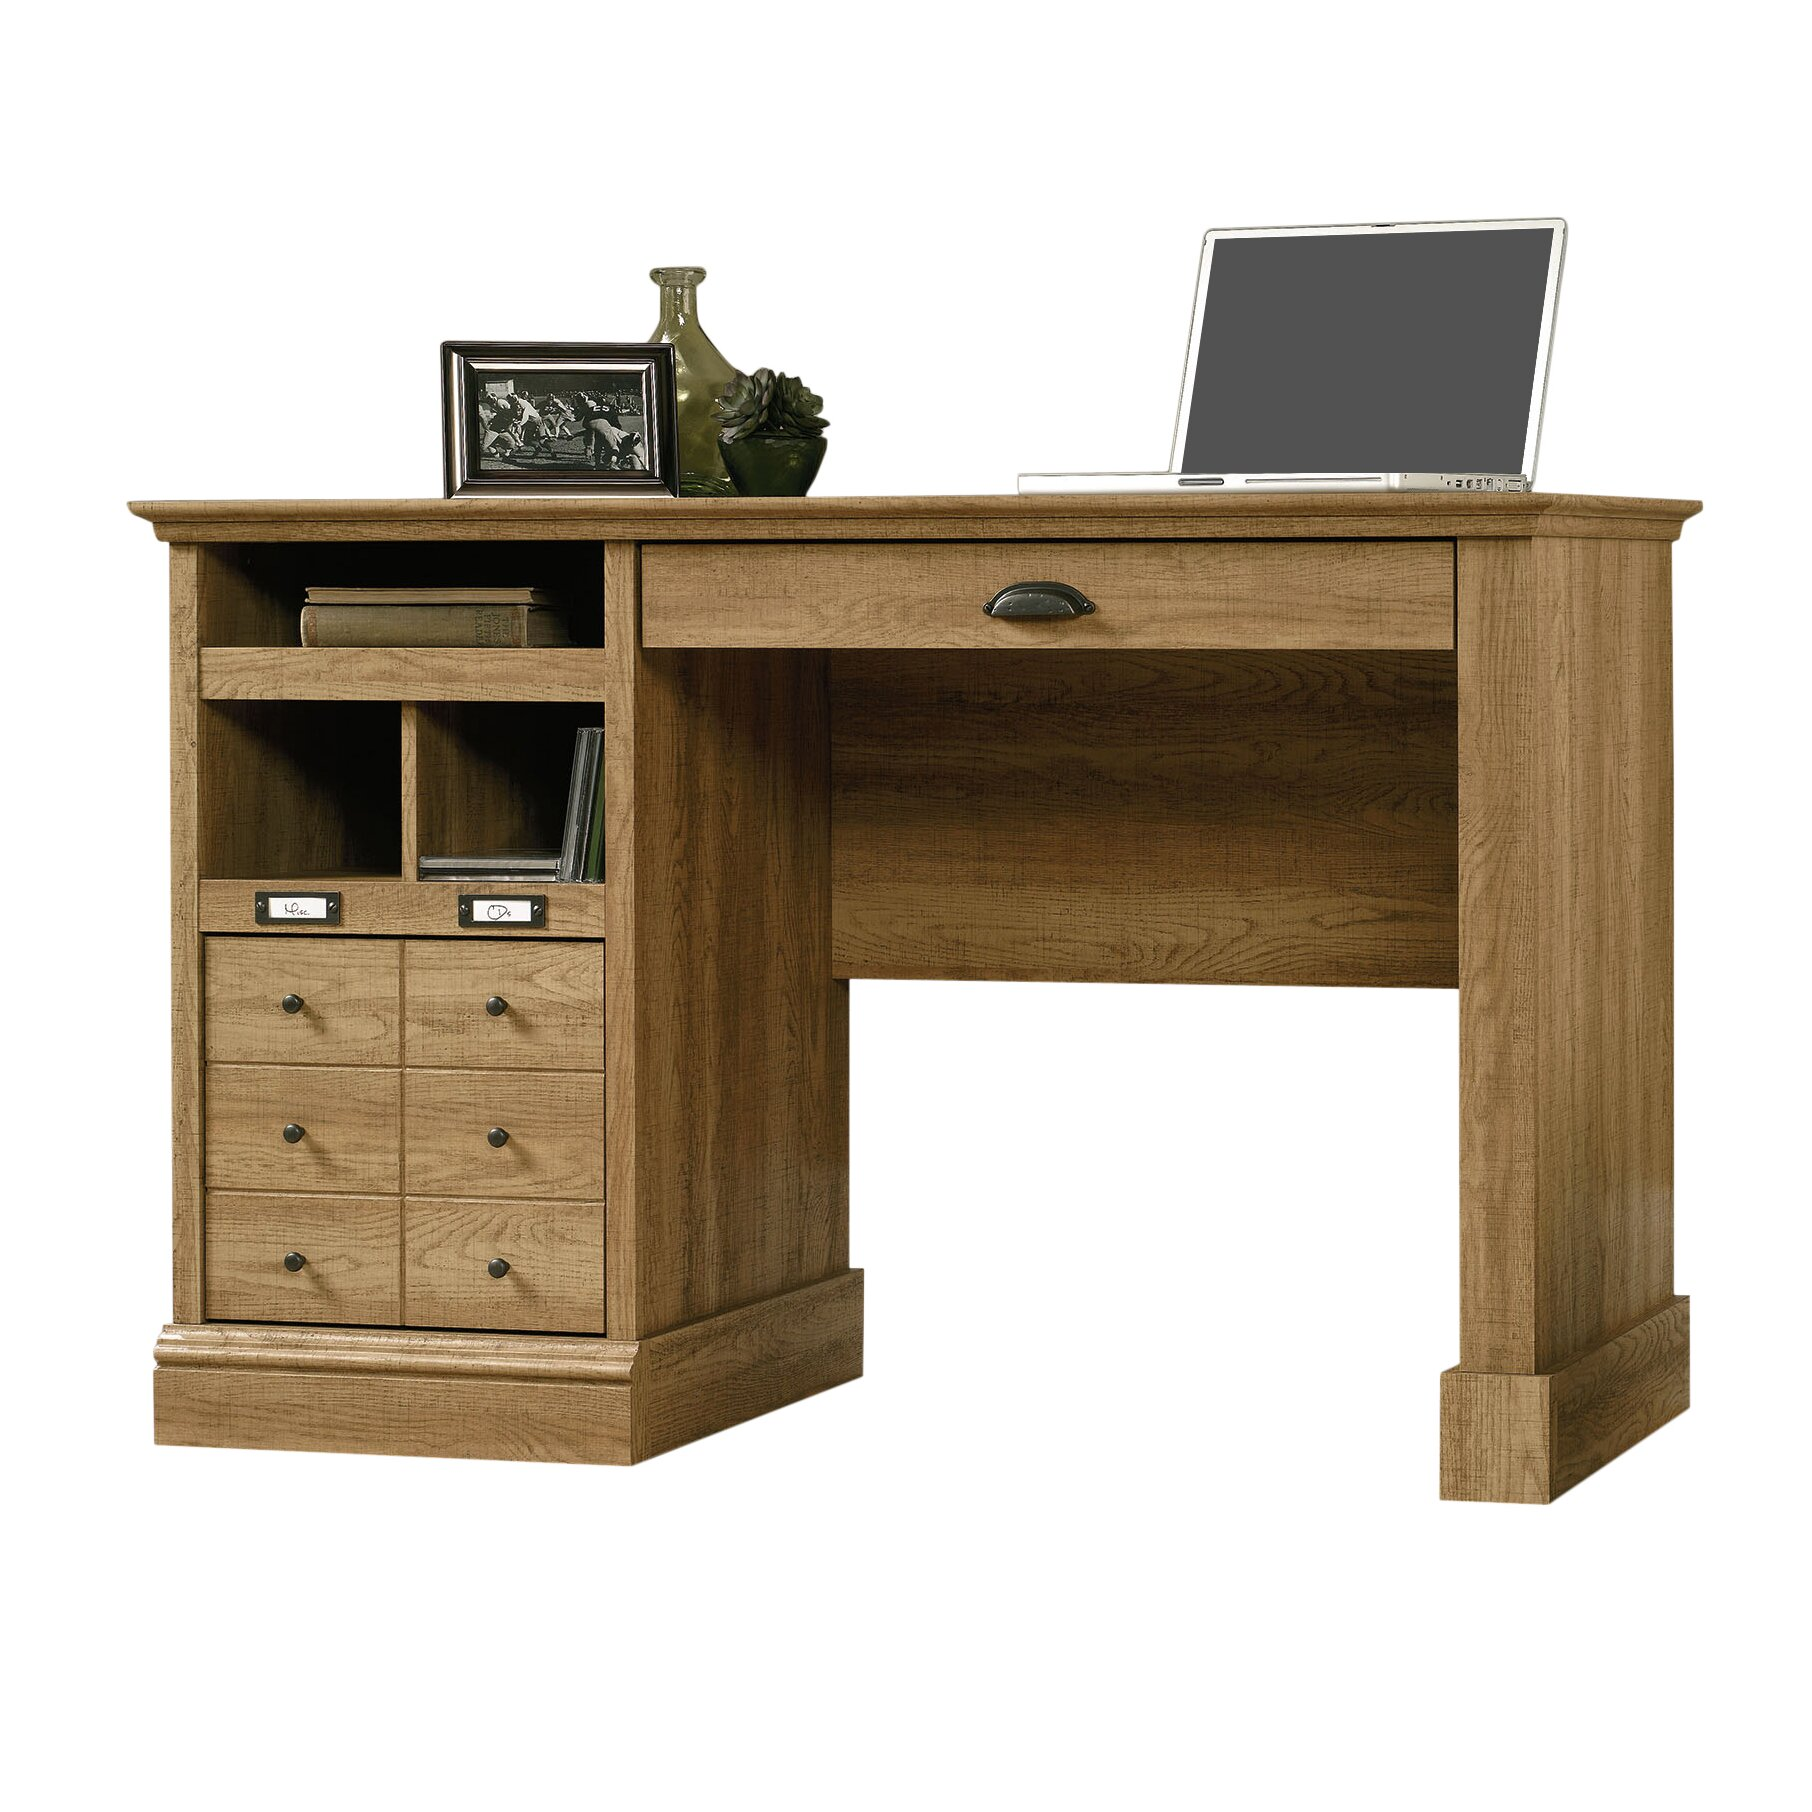 beachcrest home bowerbank computer desk with 2 storage drawers reviews wayfair. Black Bedroom Furniture Sets. Home Design Ideas